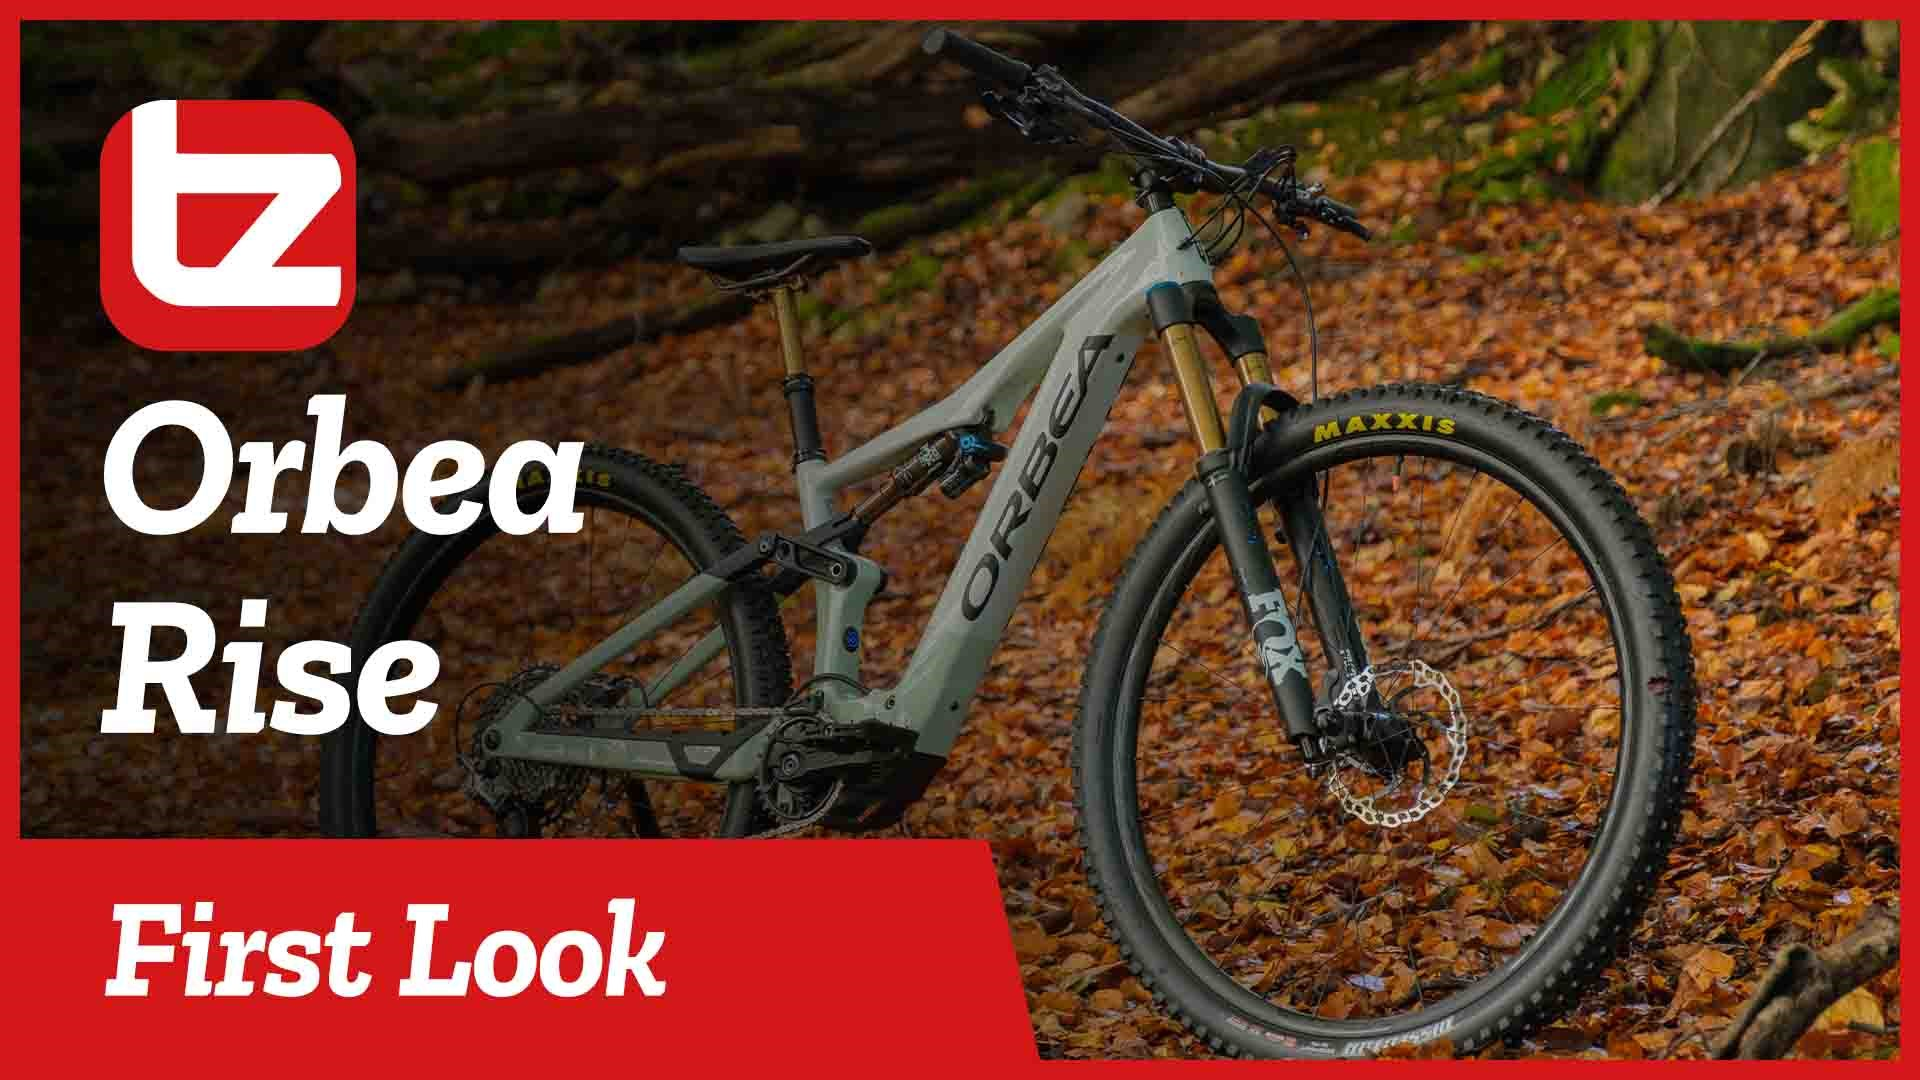 New Orbea Rise | The Most Exciting New Ebike of 2020? | First Look | Tredz Bikes